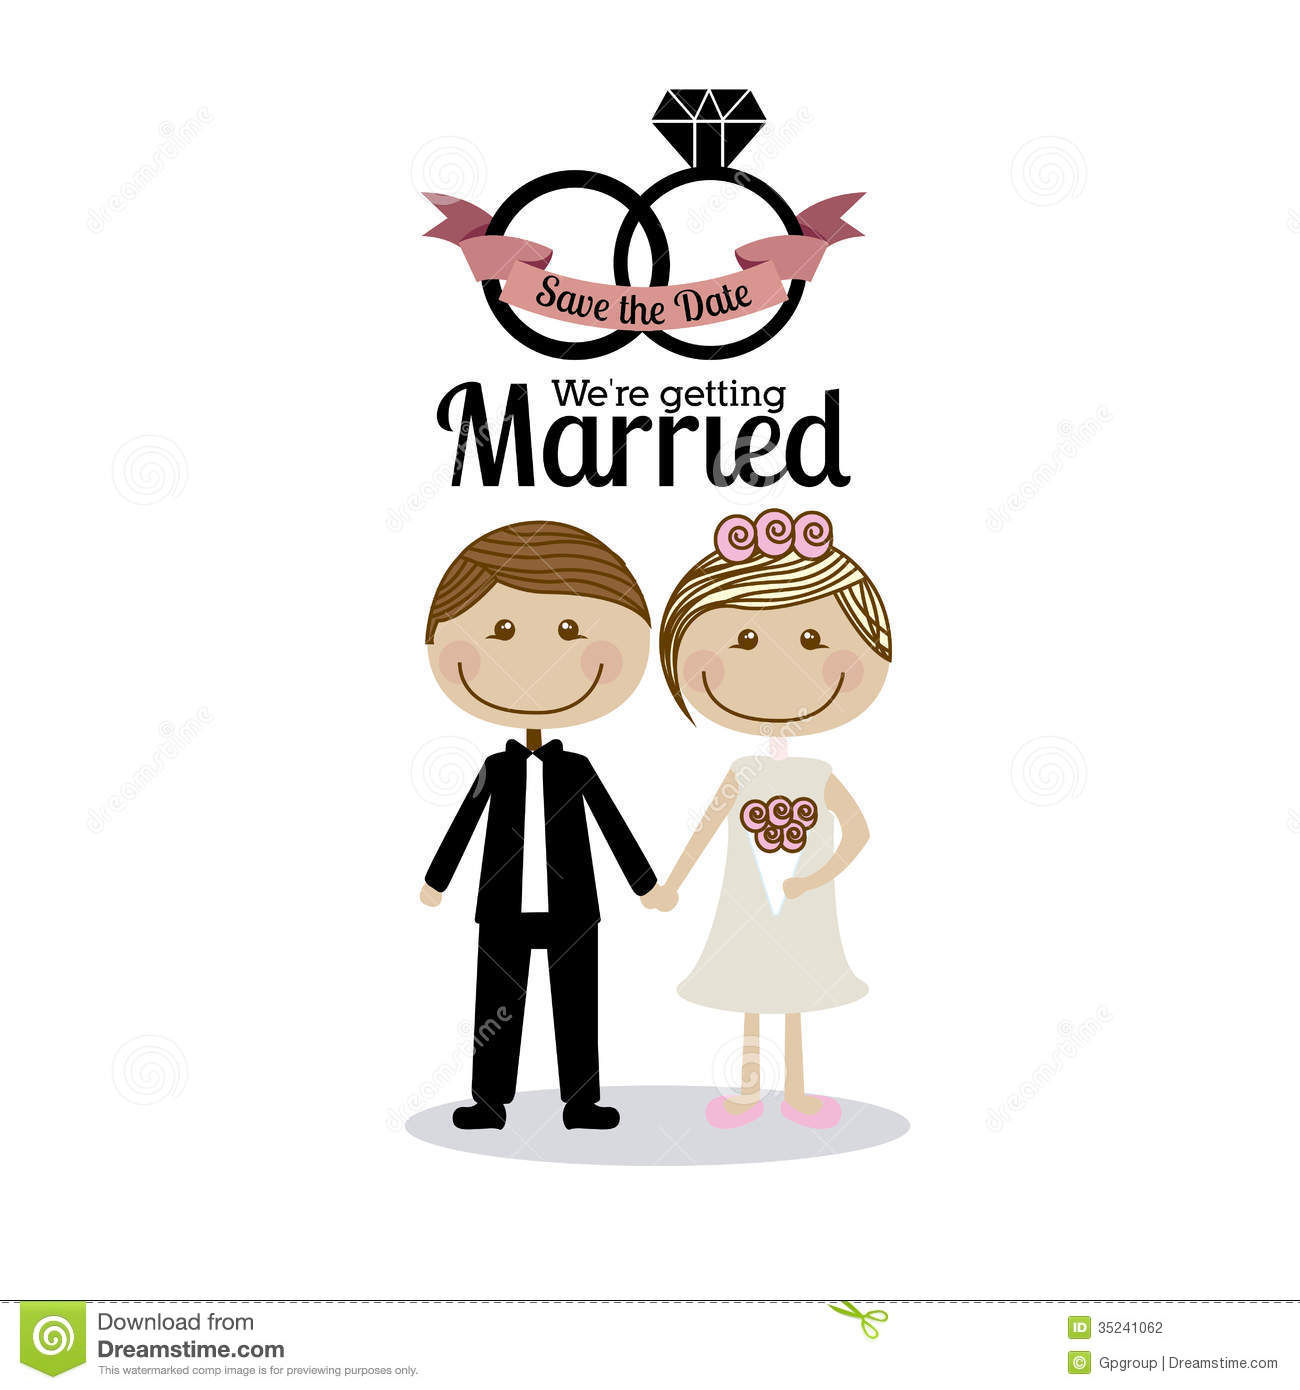 Married design stock vector illustration of cute card Married to design